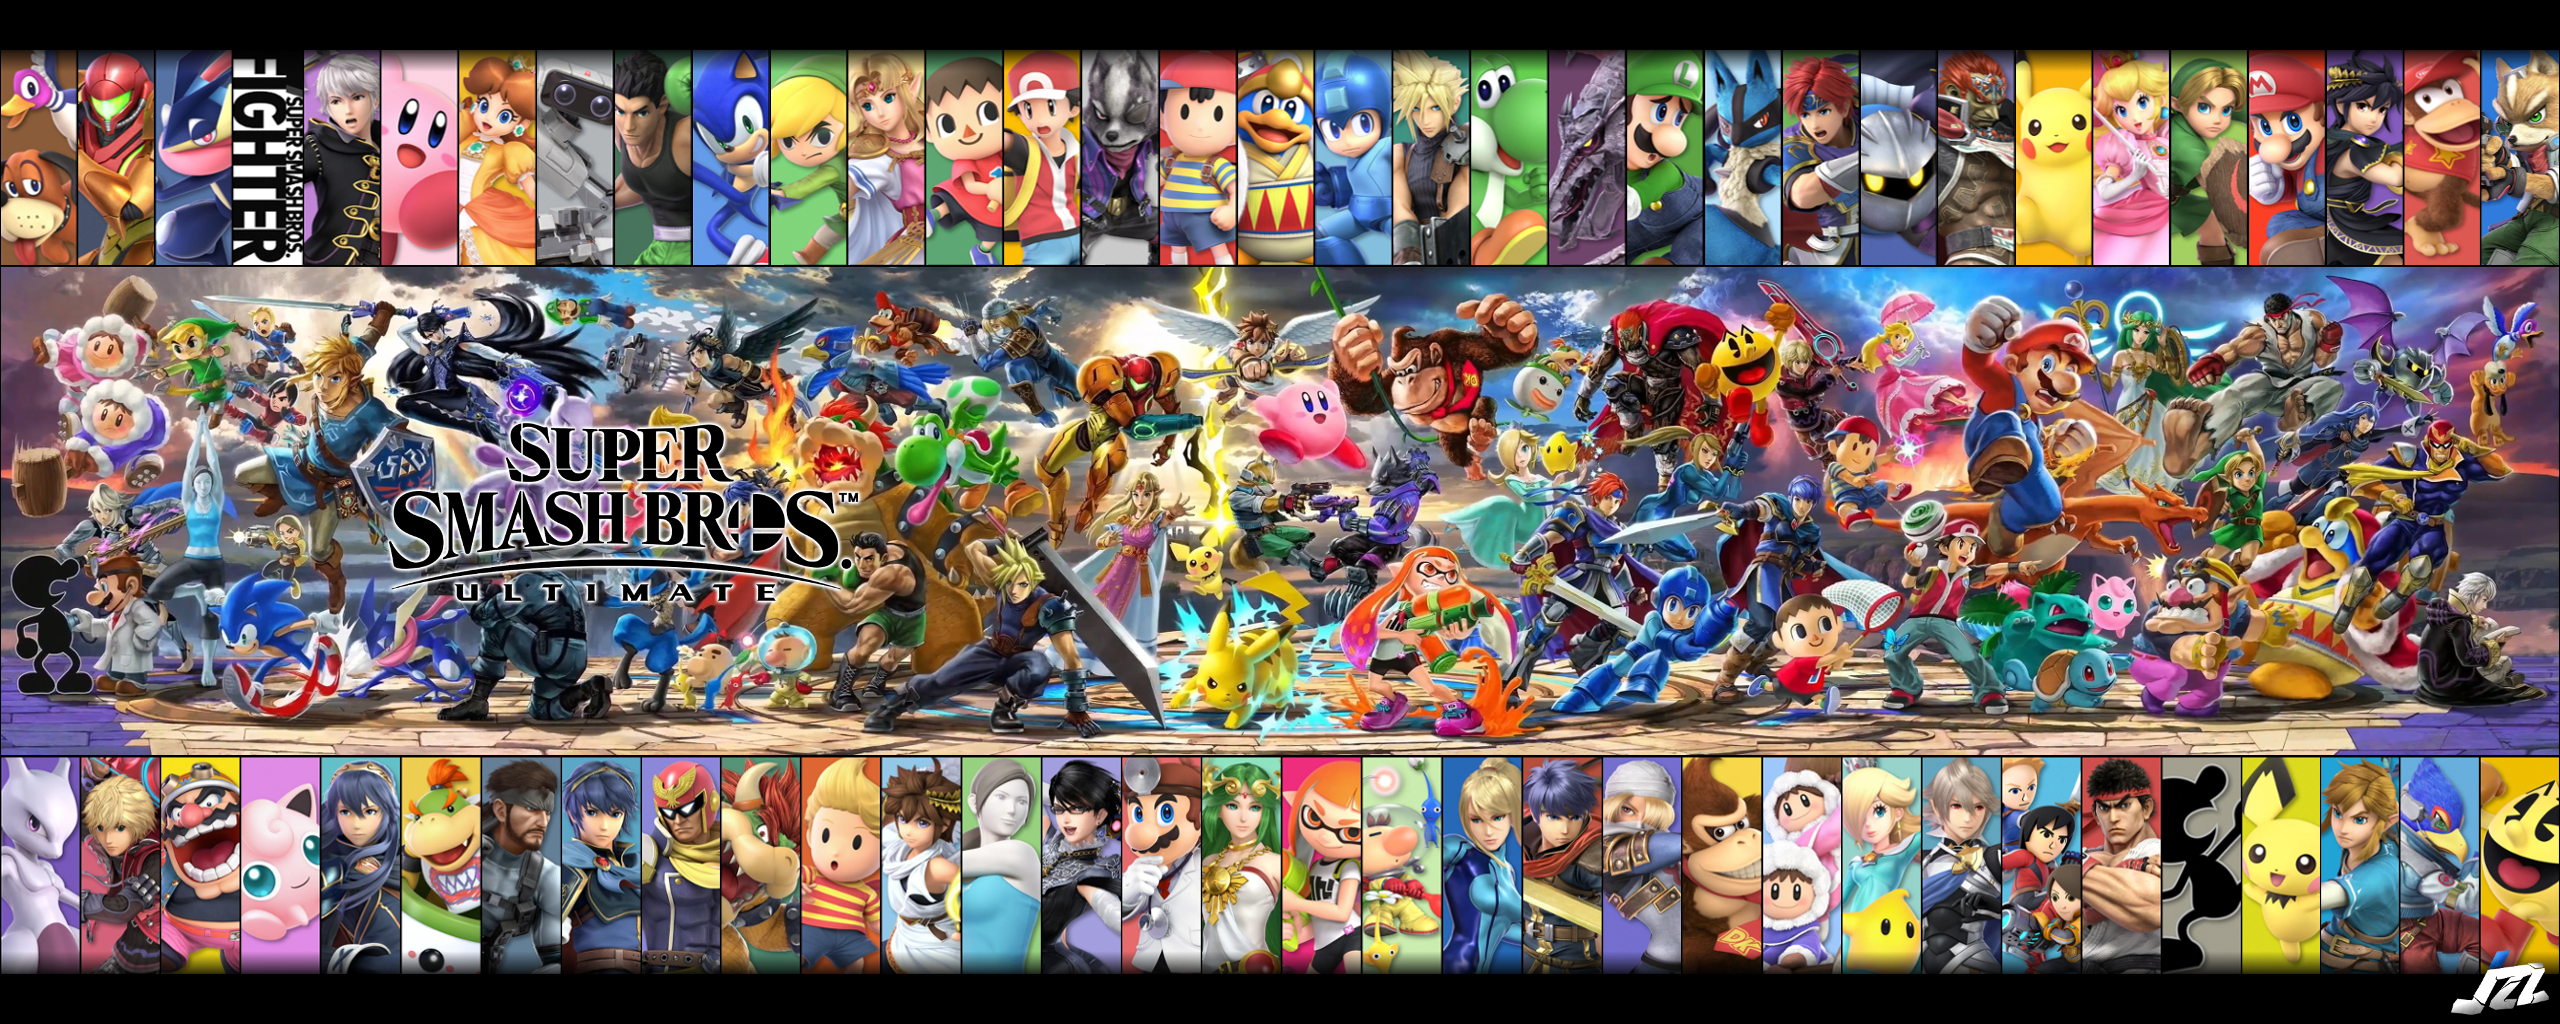 Super Smash Bros Ultimate Dual Monitor Background by JemiZZ 2560x1024